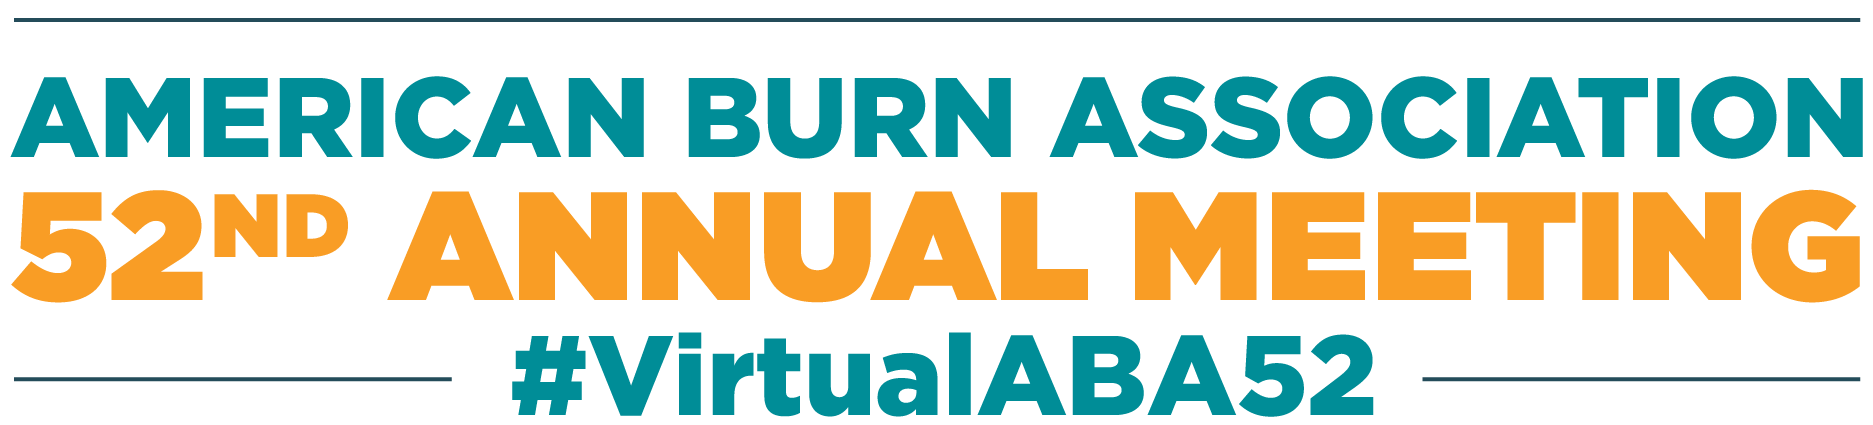 Logo reading American Burn Association 52nd Annual Meeting #VirtualABA52